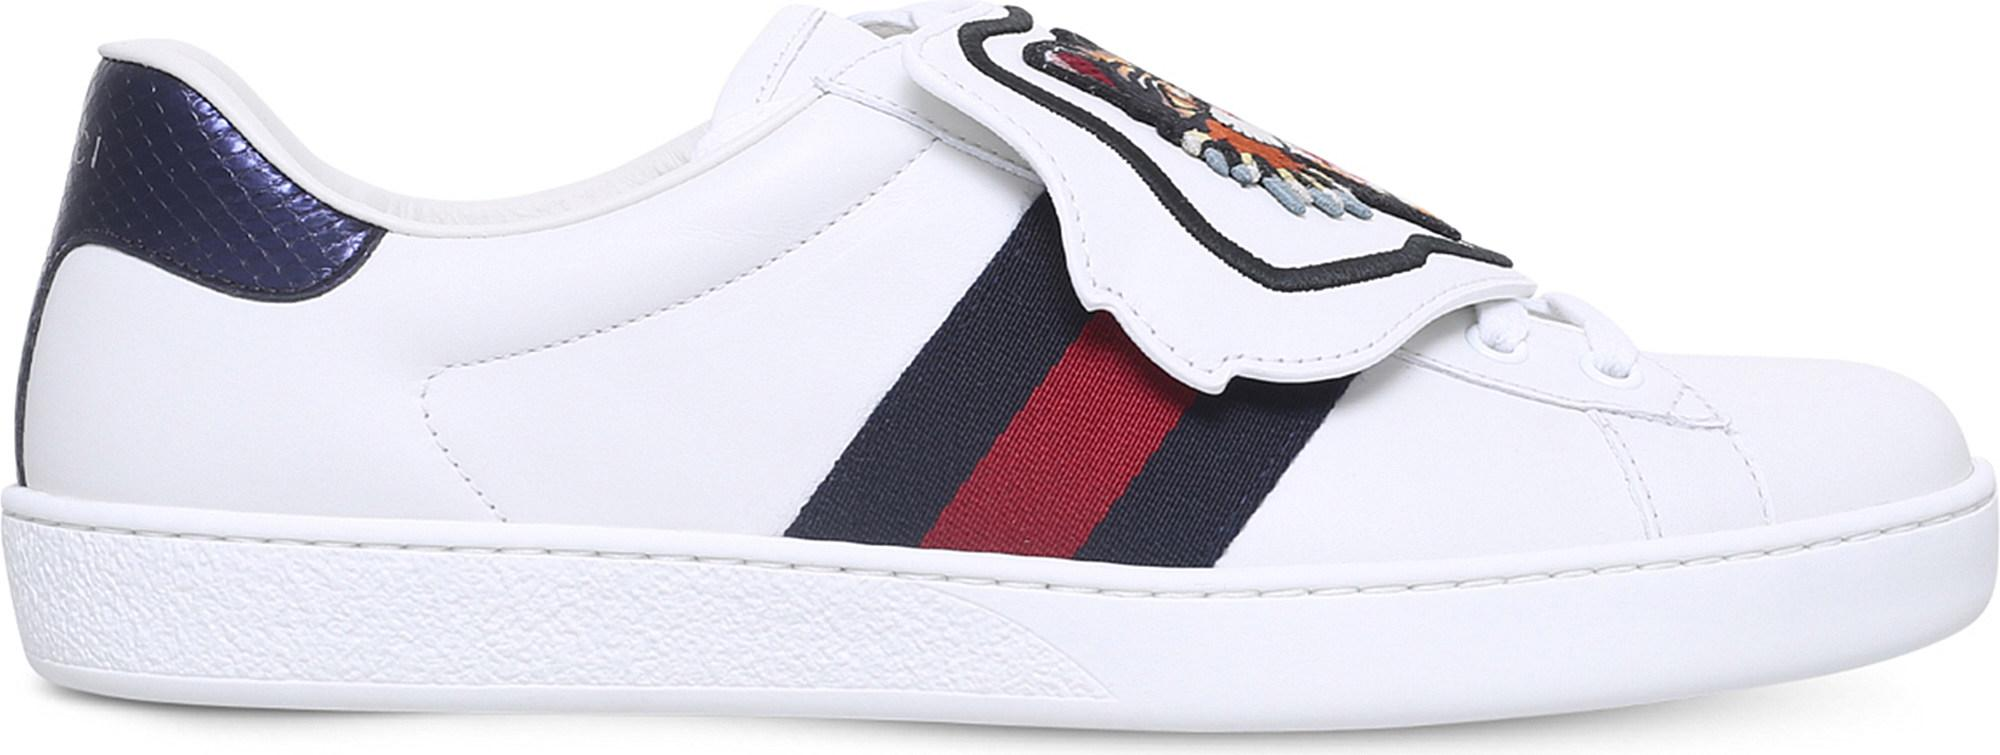 7a430cb6c Gucci New Ace Cat Patch Leather Trainers in White for Men - Lyst